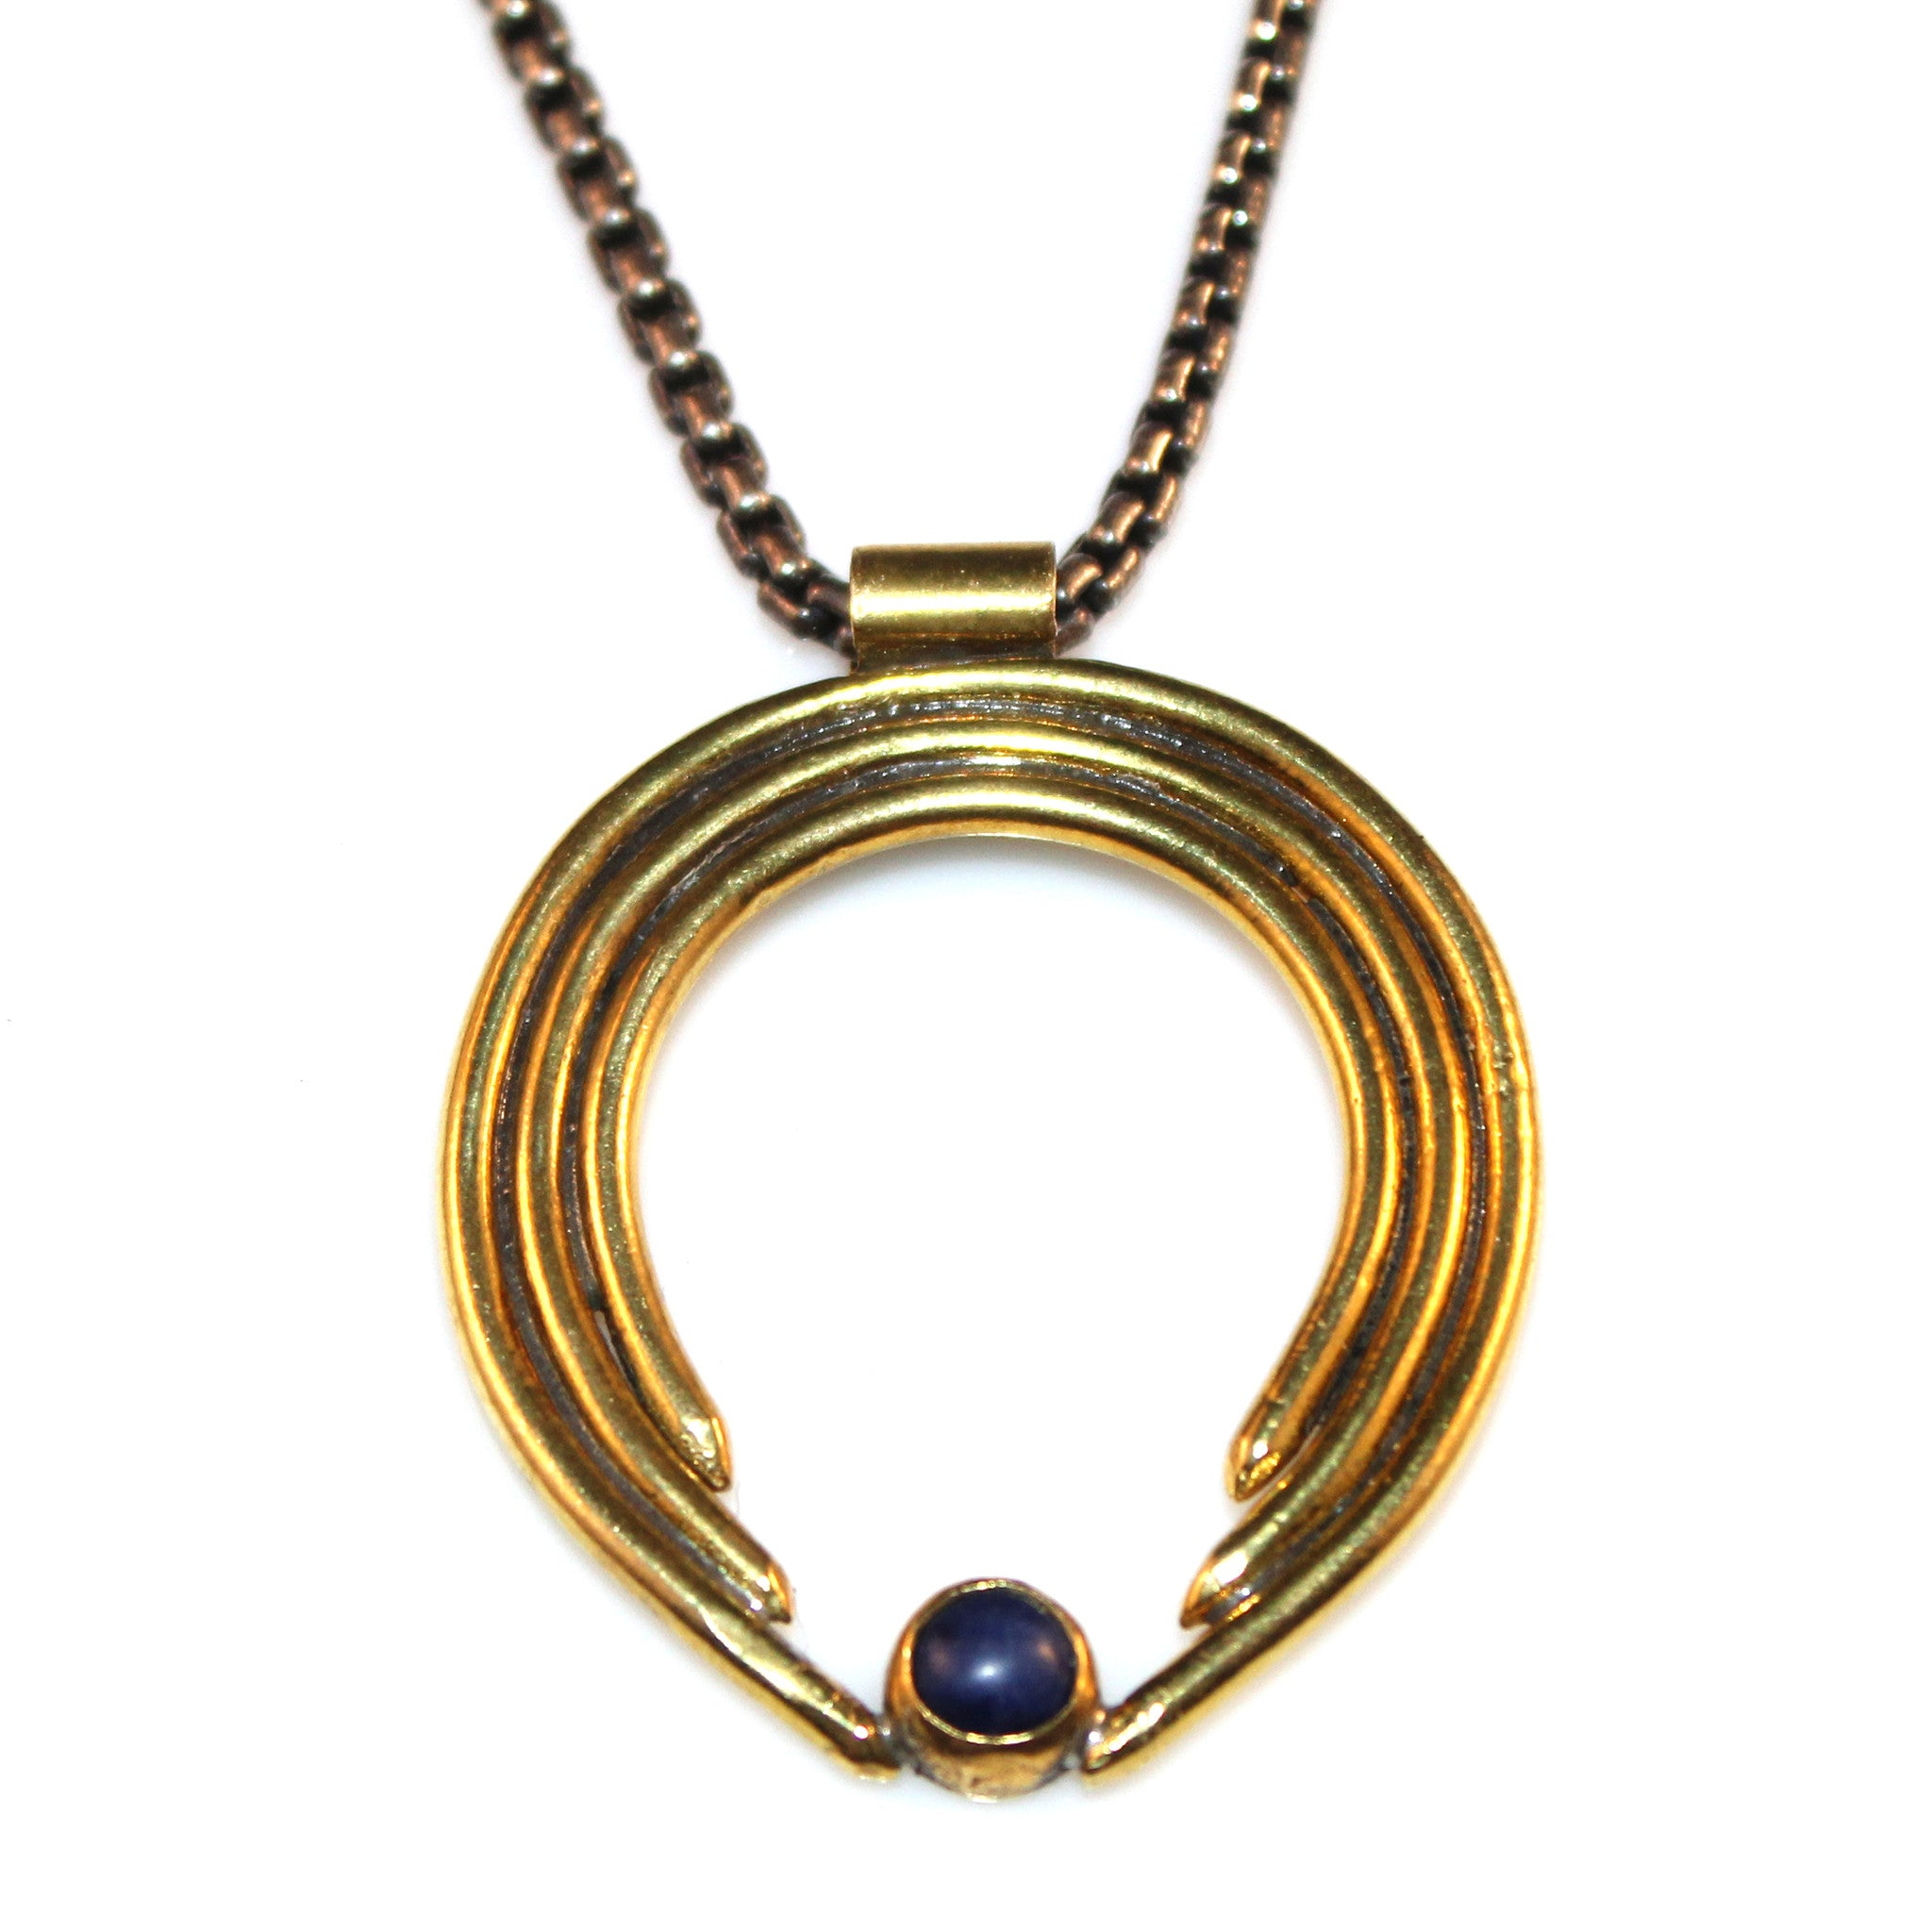 Donia Necklace - Center Stone